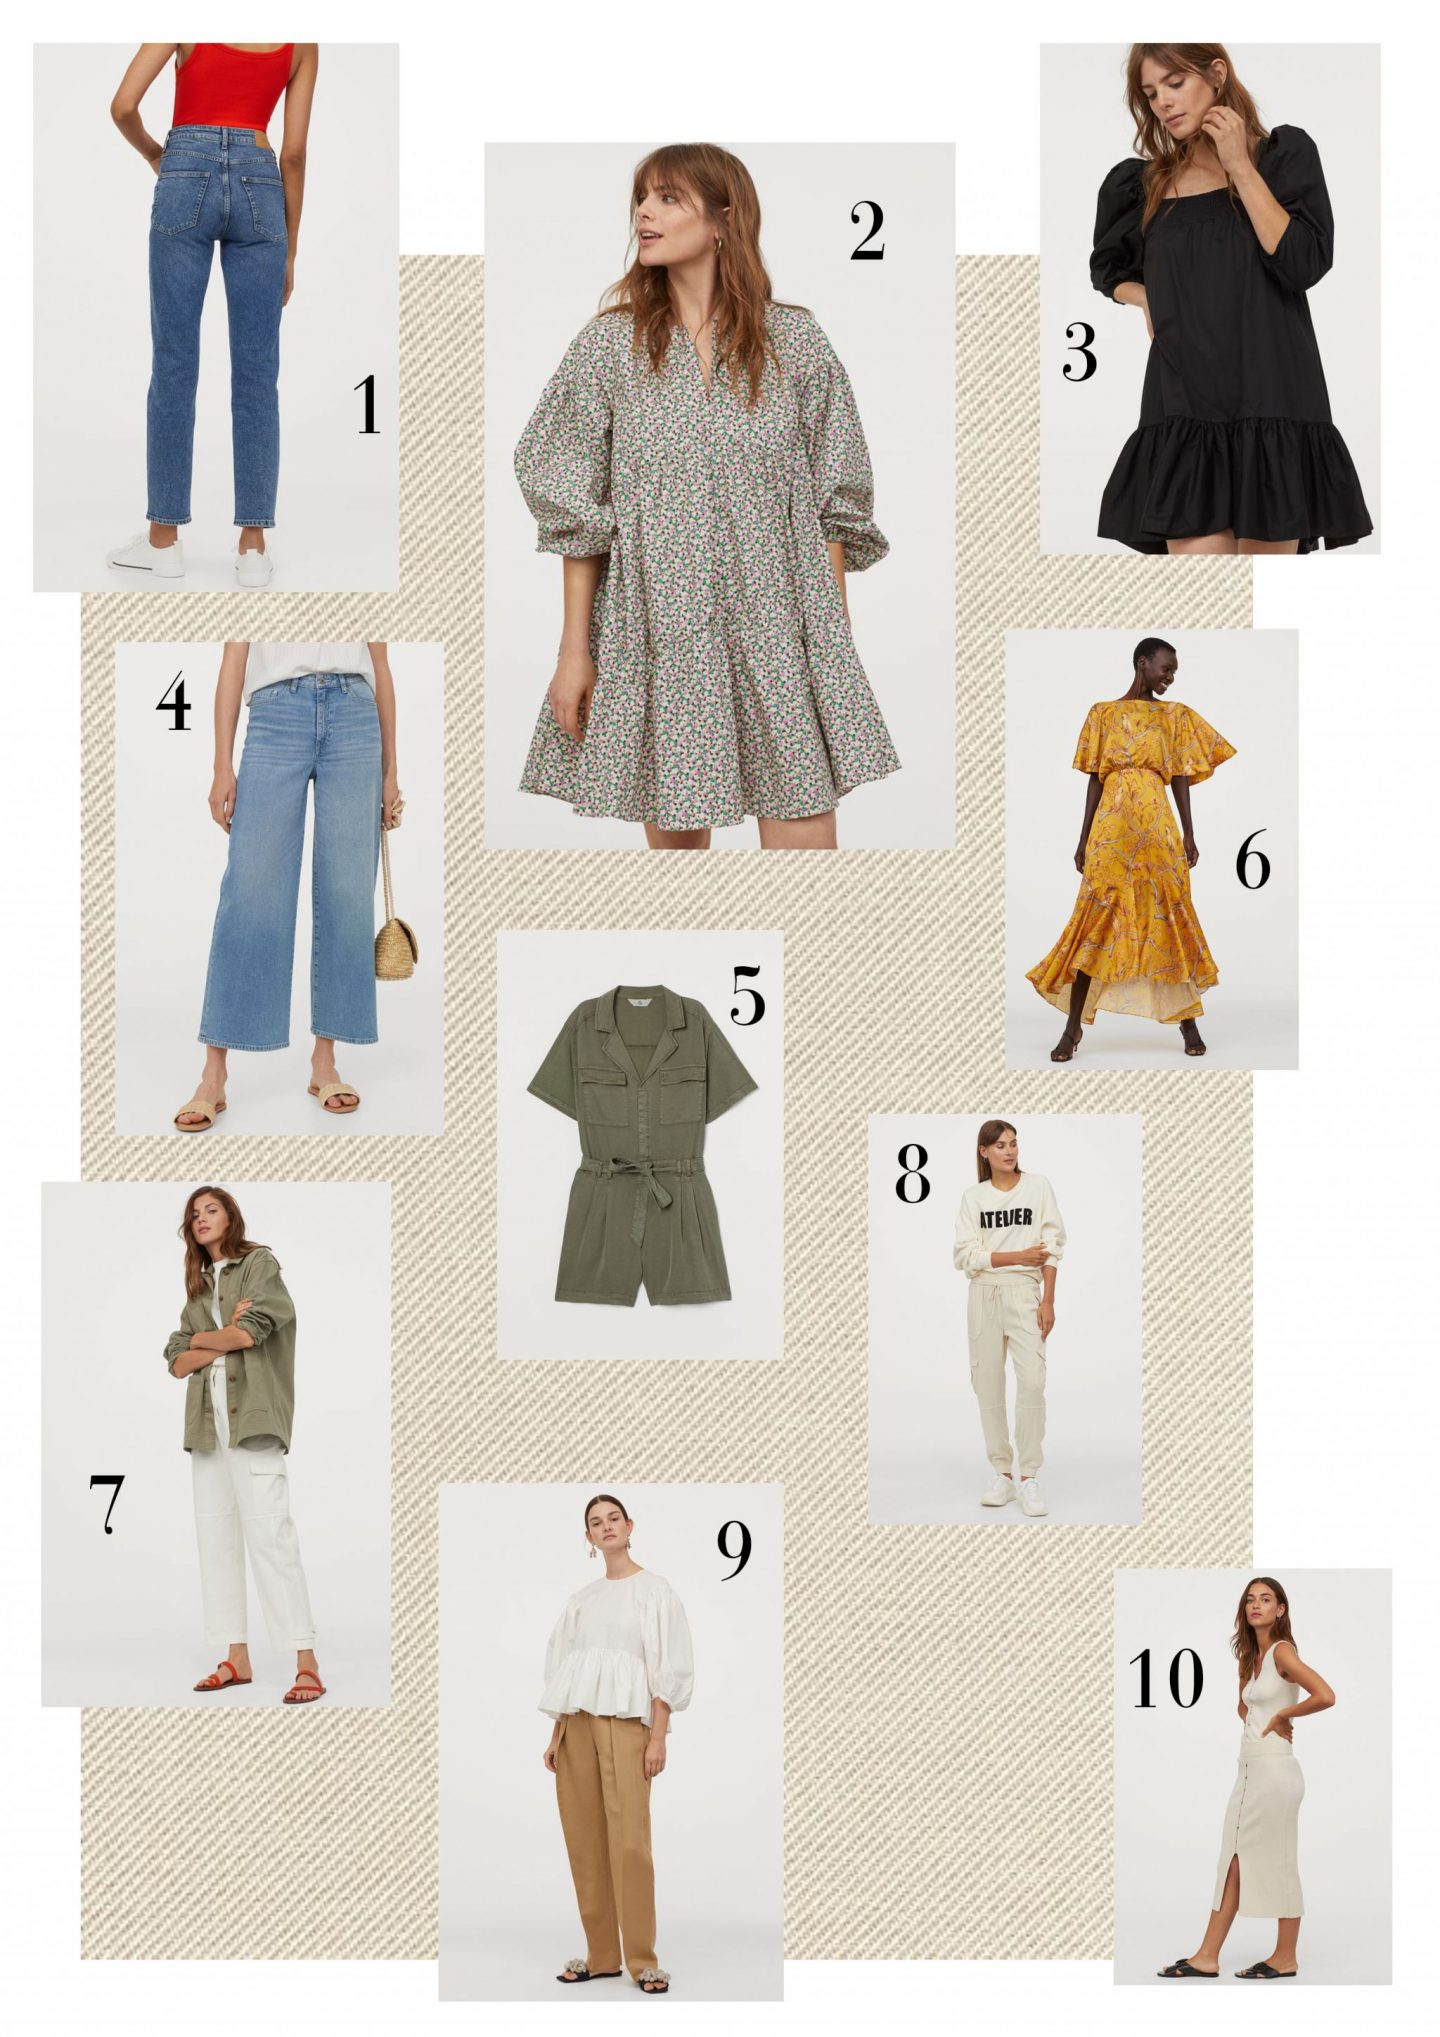 Did you know the H&M Conscious Collection is online and in store? Here are some of my picks from it...